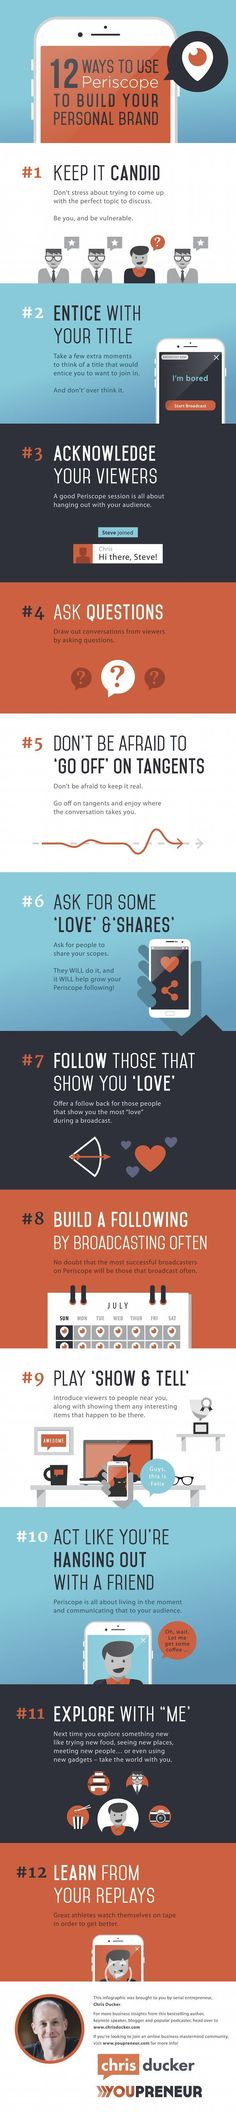 12 Ways to Use Periscope to Build Your Personal Brand [Infographic]